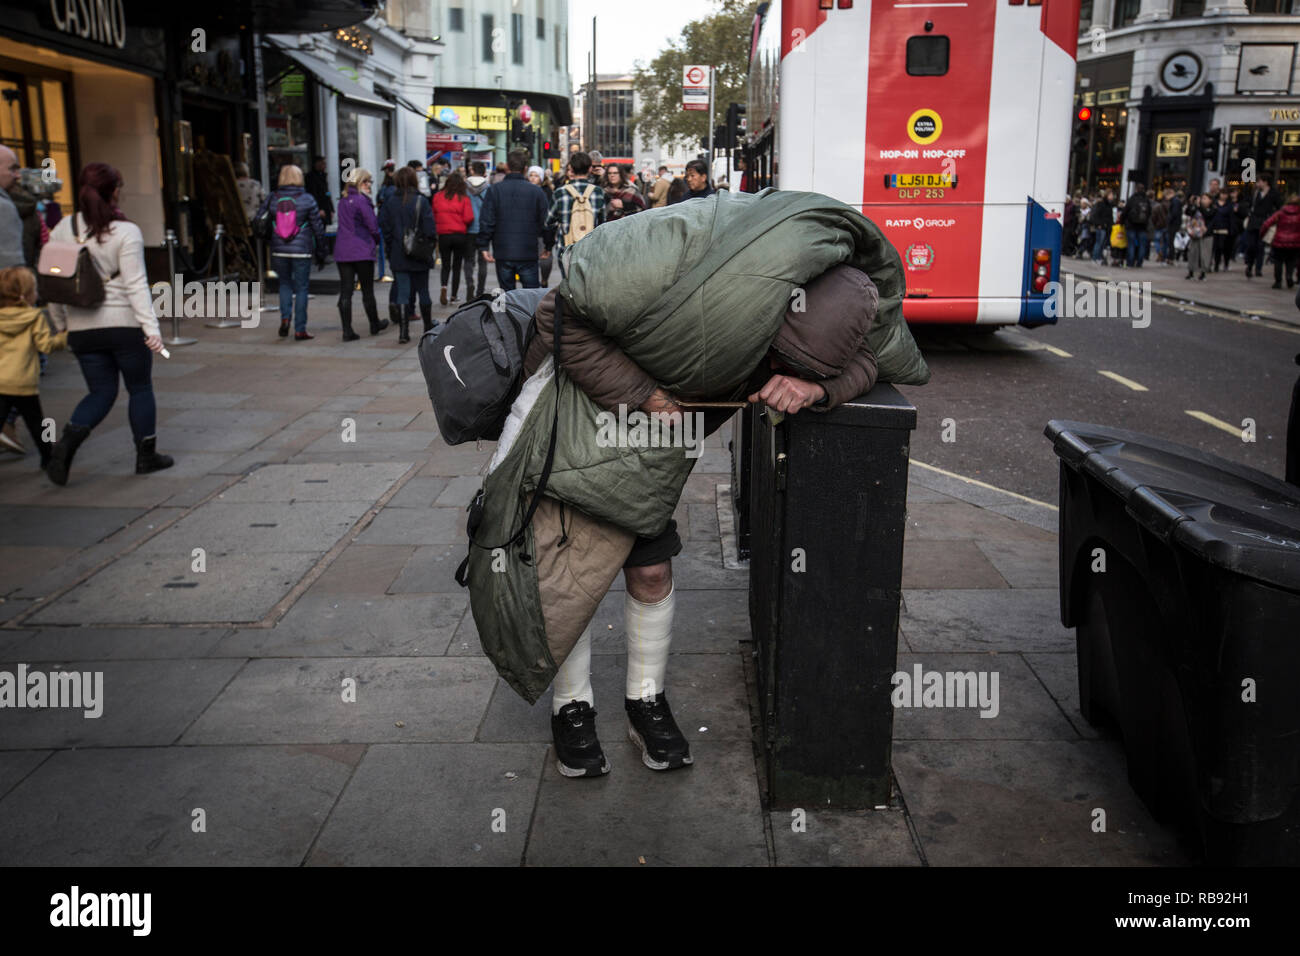 Rough sleeper struggling to carry his belongings and walk along the pavement in Trafalgar Square area of central London, England, United Kingdom - Stock Image